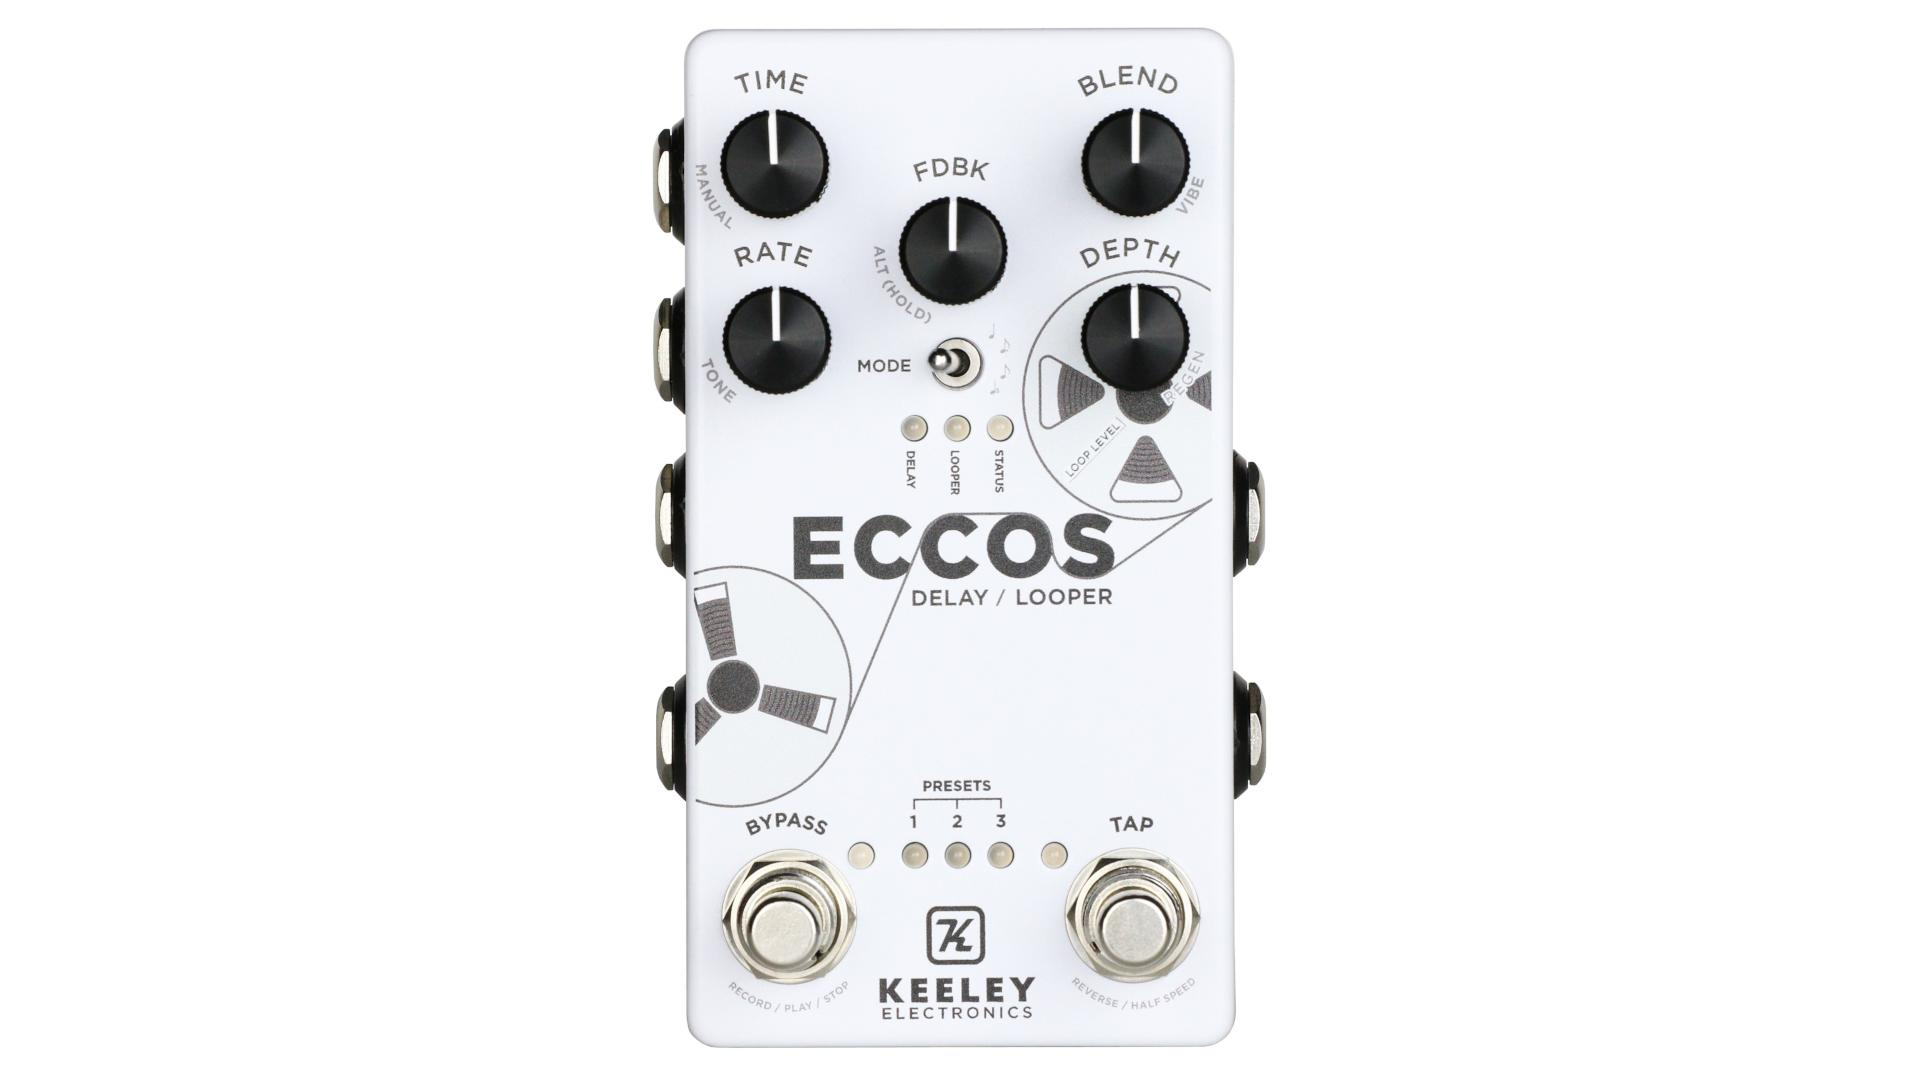 Keeley Electronics ECCOS - Delay / Looper